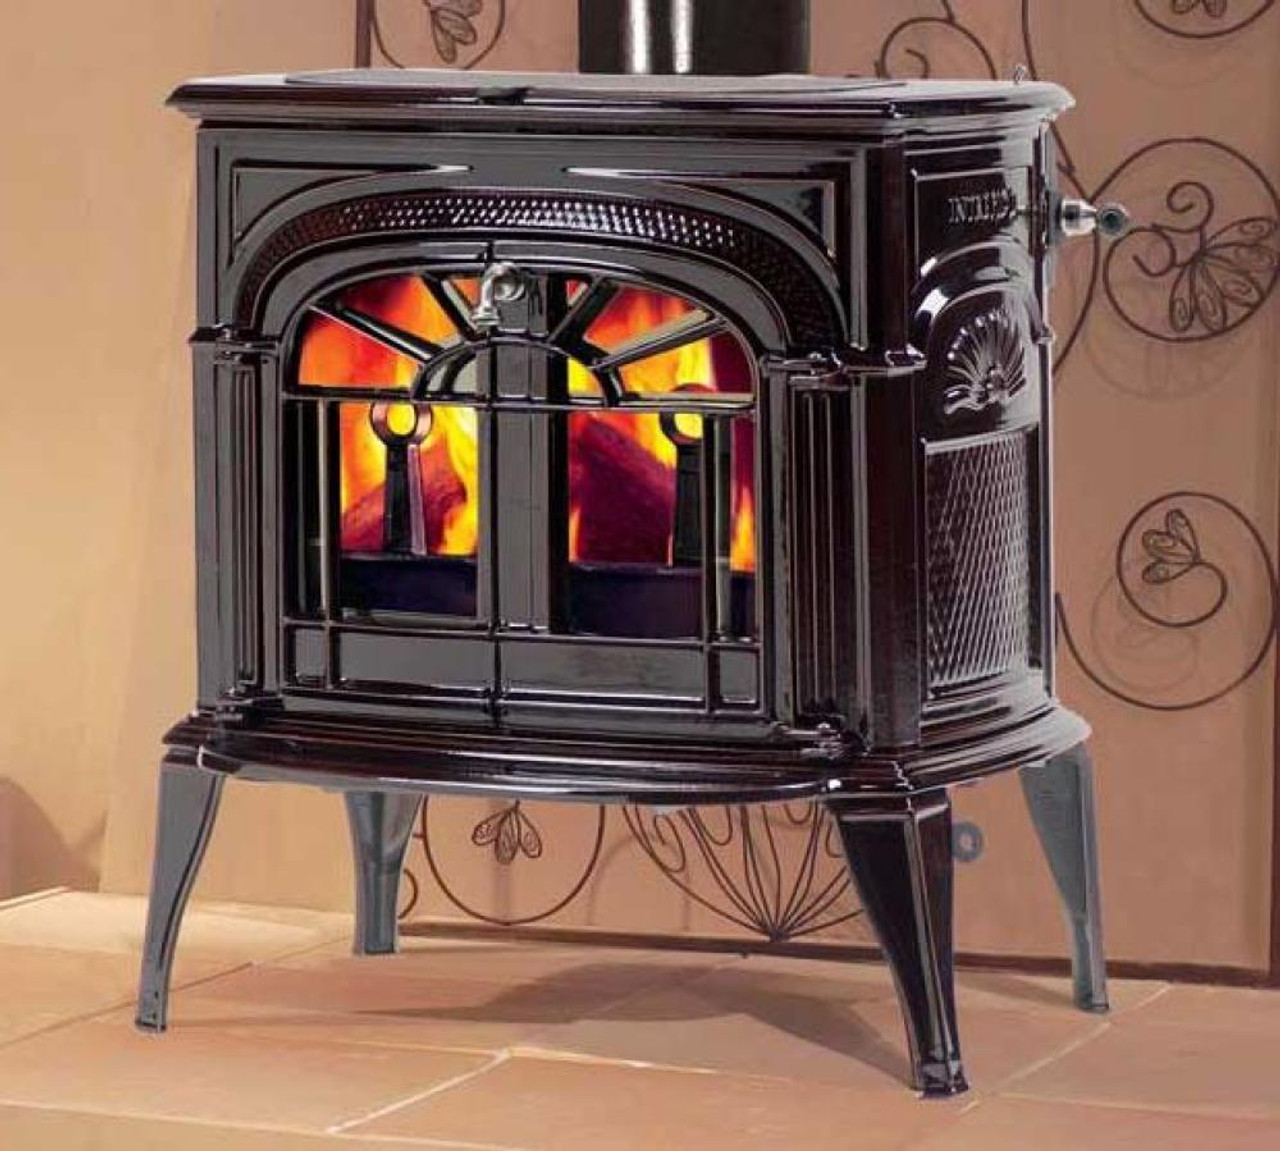 vermont castings intrepid direct vent gas stove embers fireplaces outdoor living [ 1000 x 899 Pixel ]